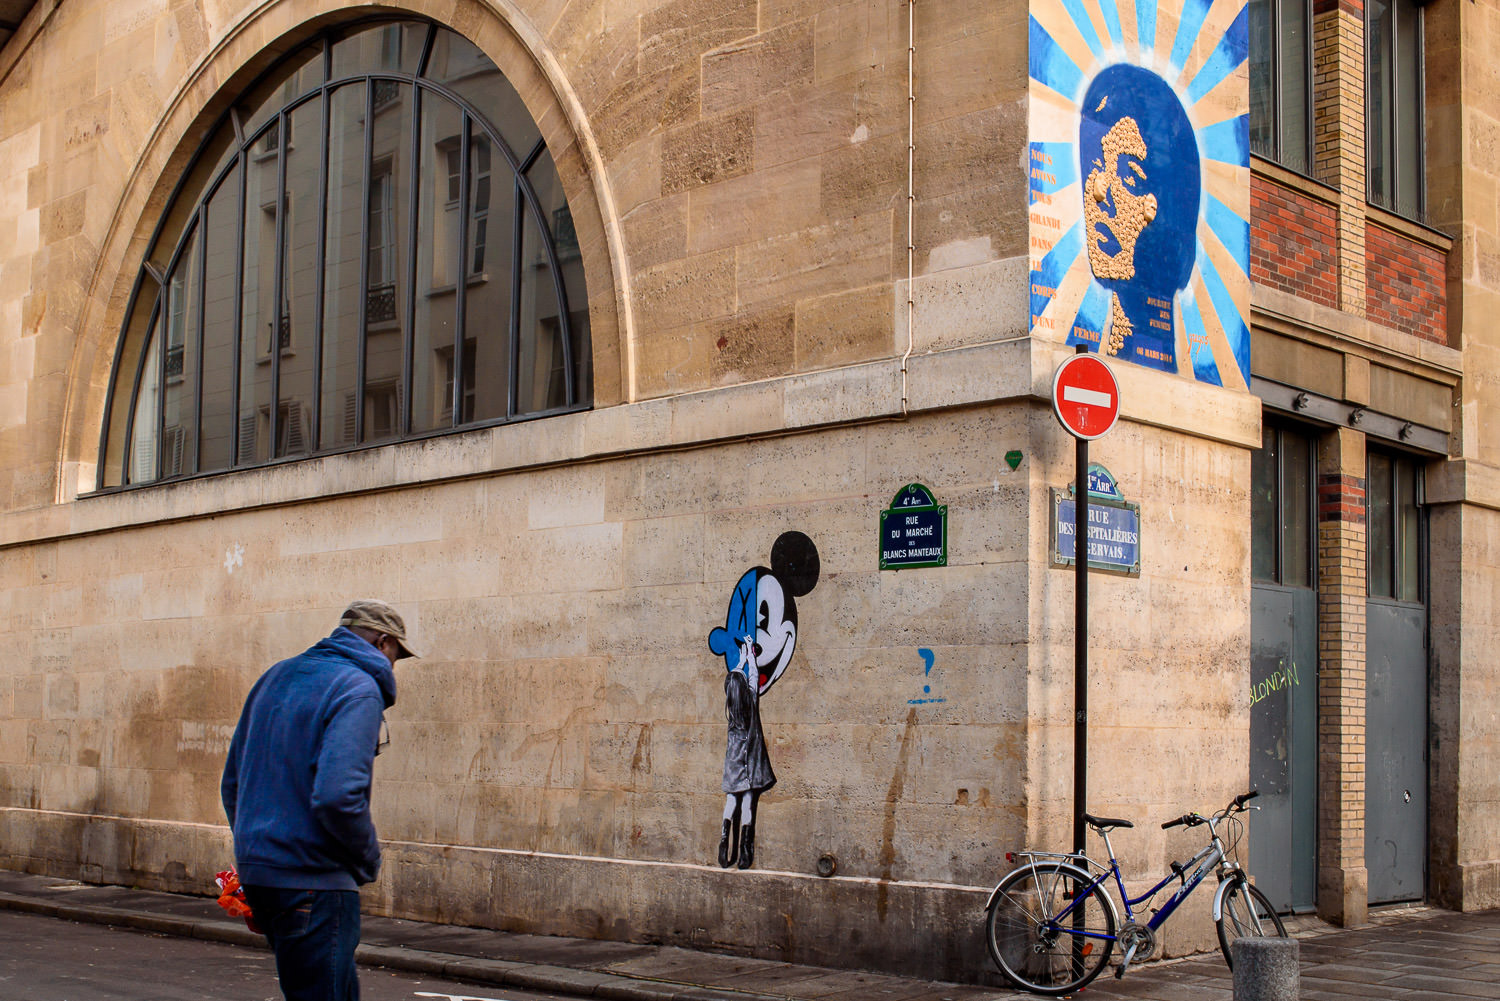 Blue Street art in Paris